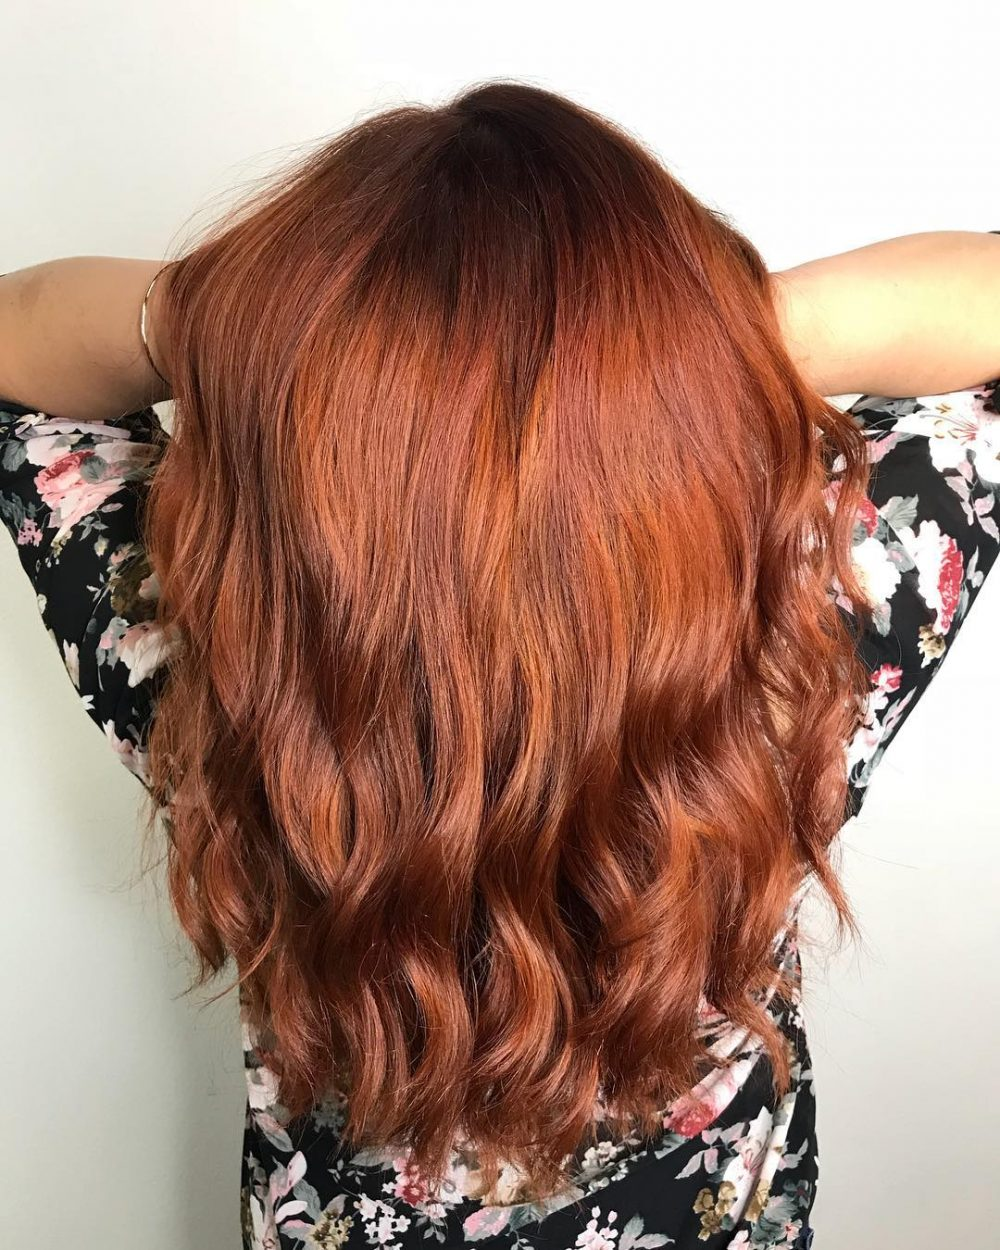 Dimensional Copper Waves hairstyle